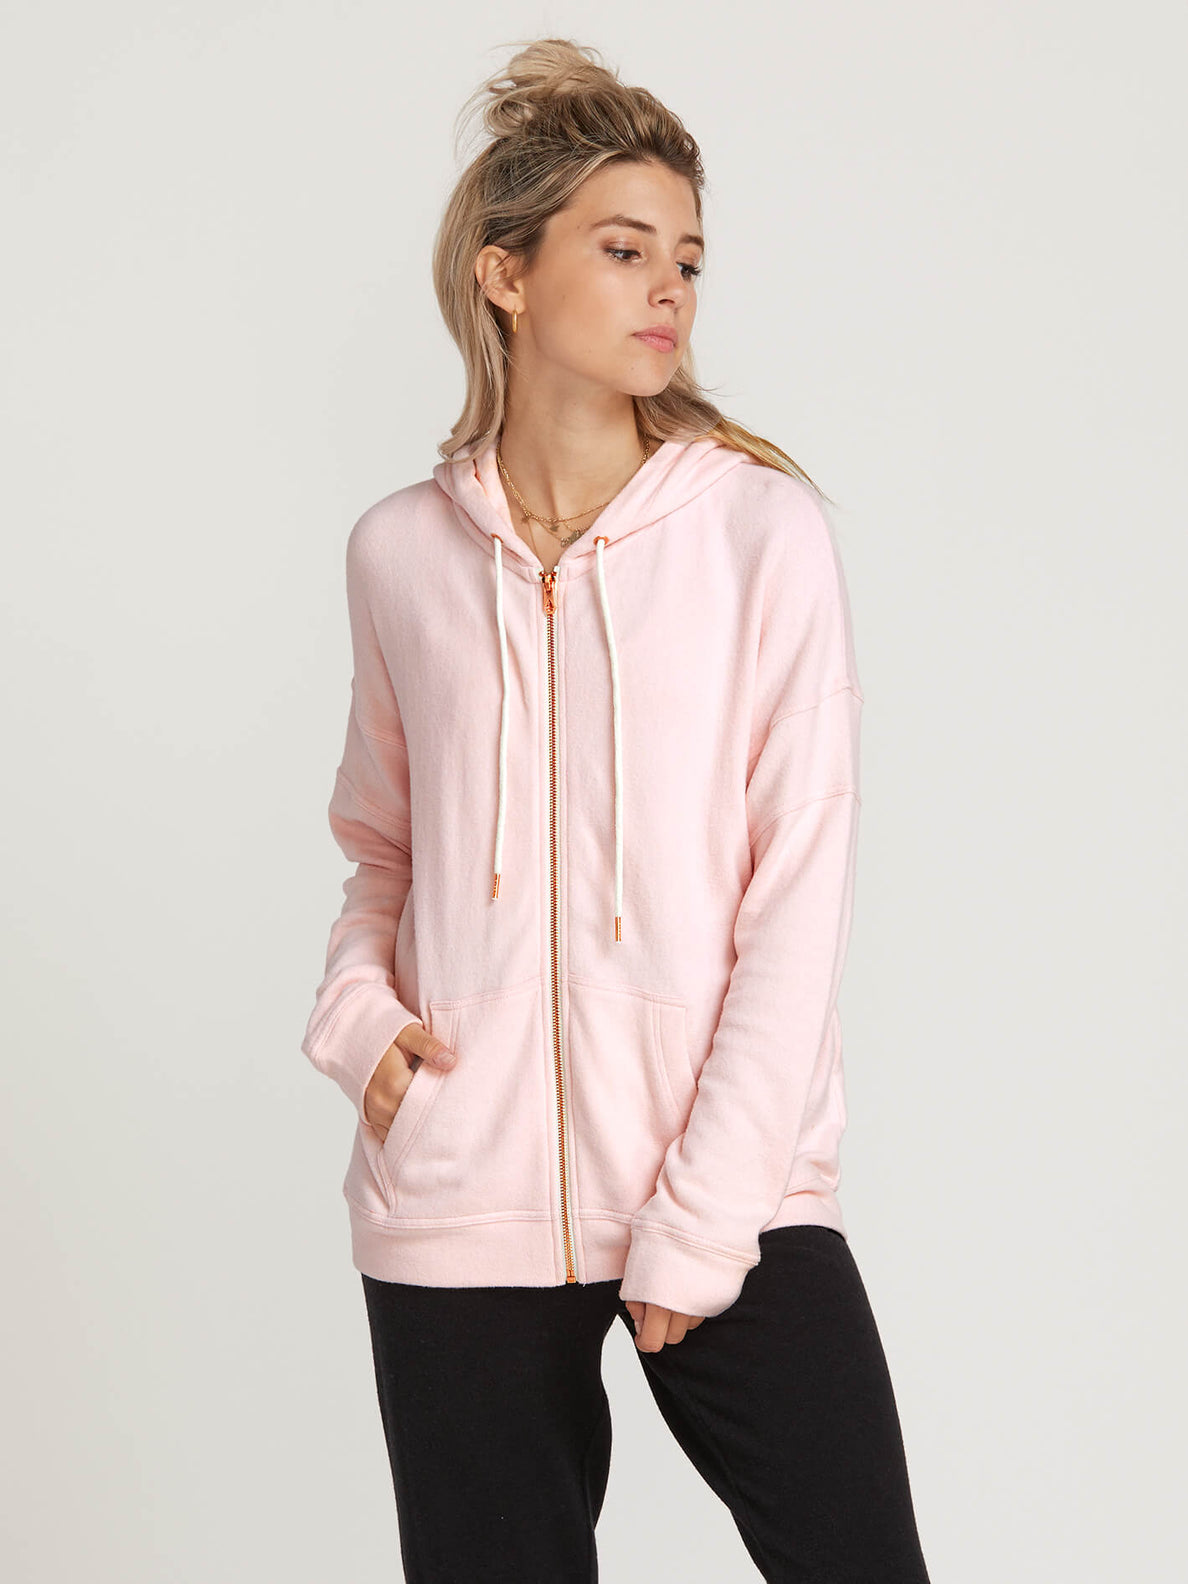 Lived In Lounge Zip Hoodie In Blush Pink, Front View